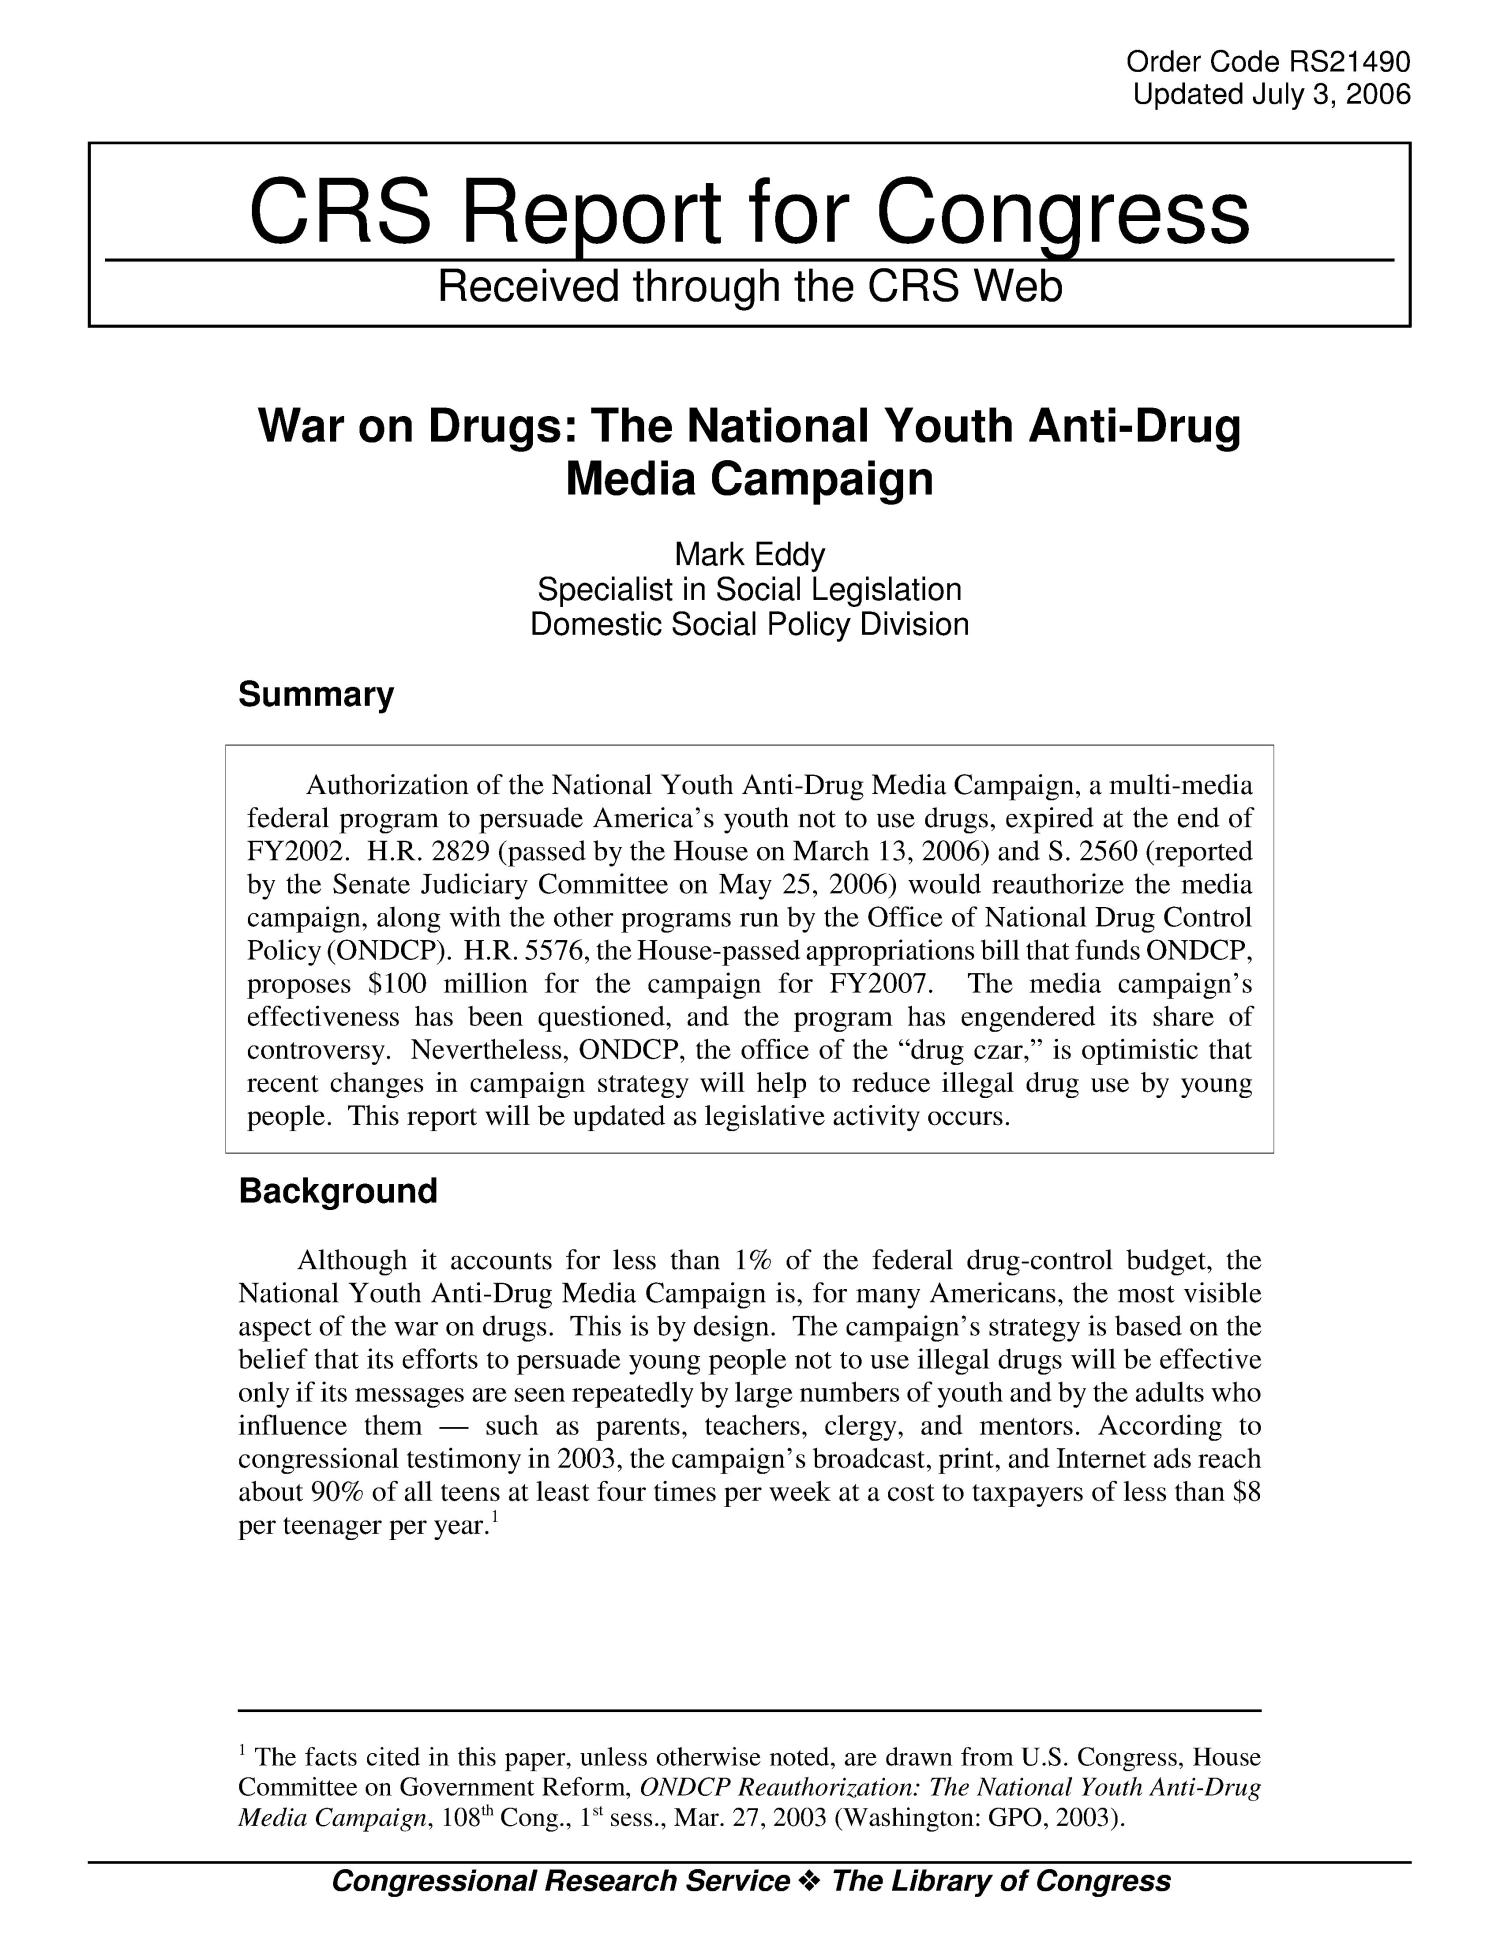 War on Drugs: The National Youth Anti-Drug Media Campaign                                                                                                      [Sequence #]: 1 of 6